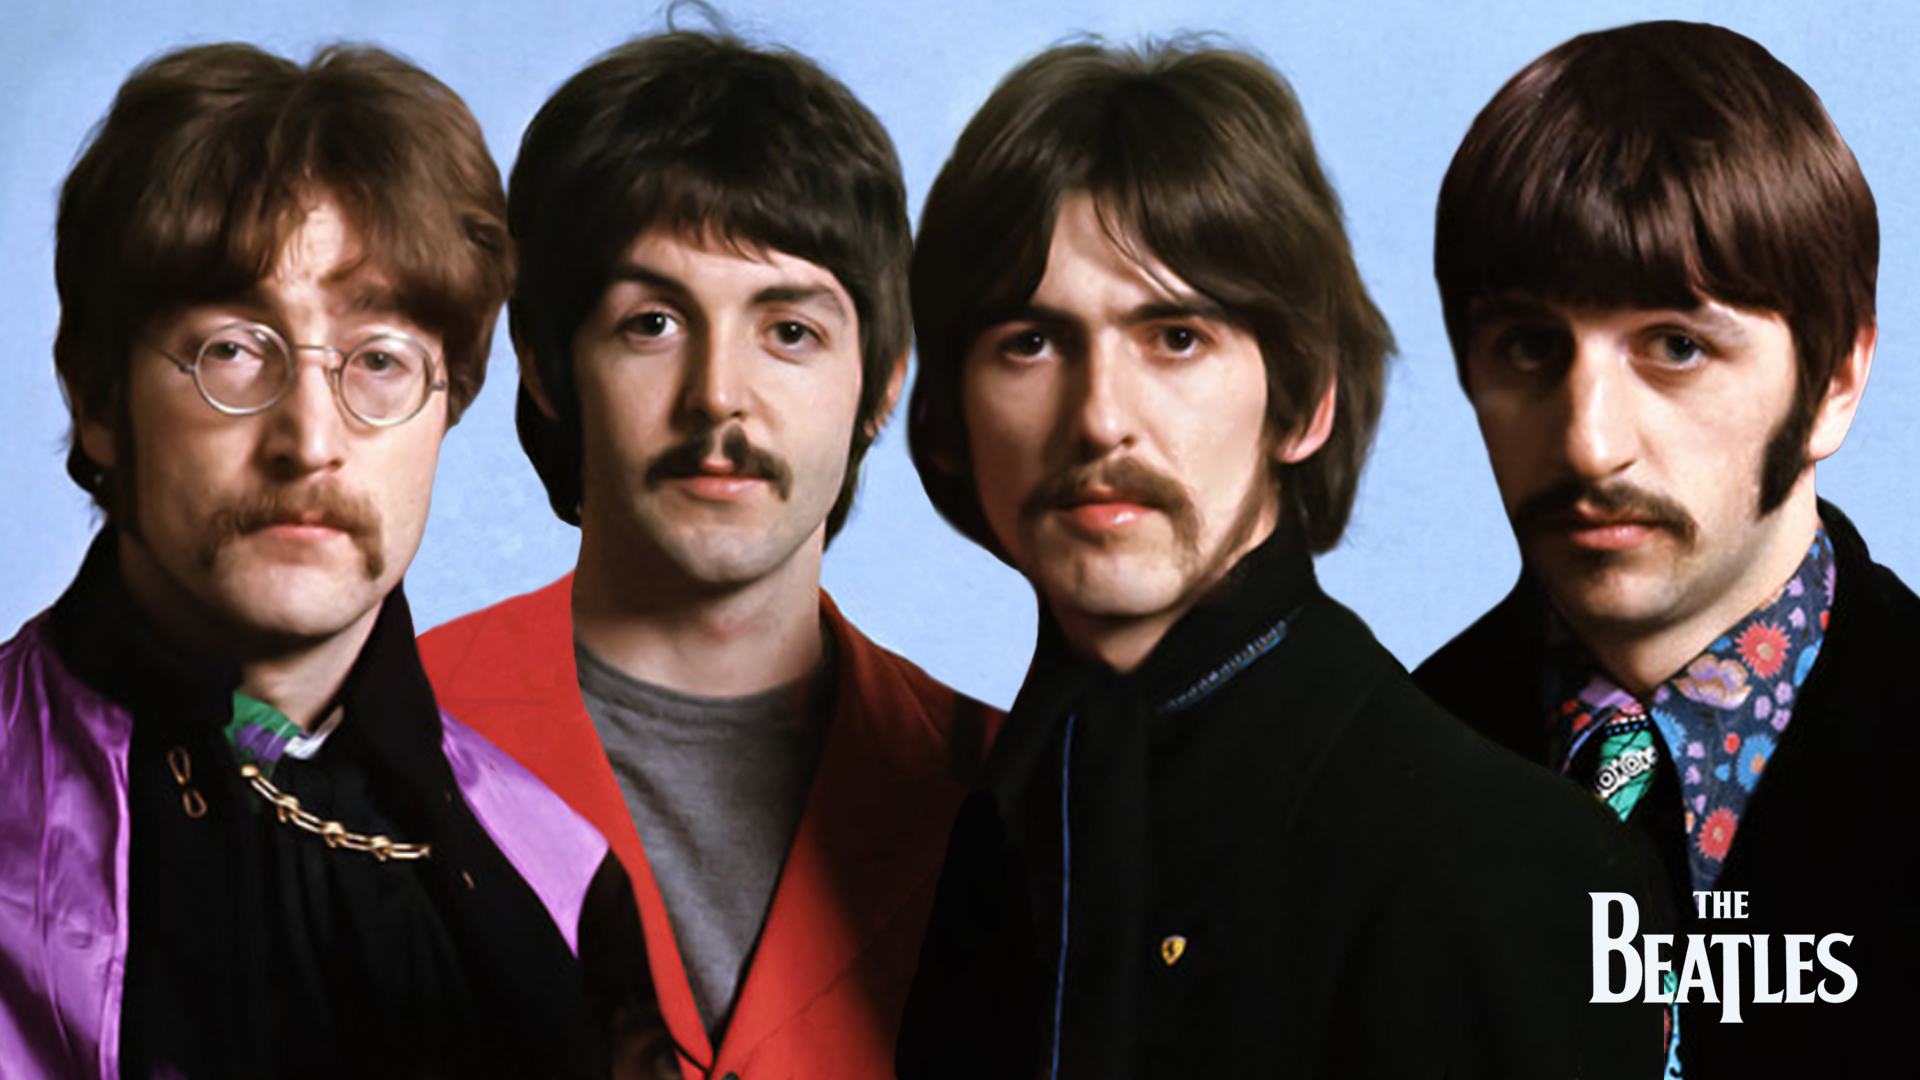 The Beatles 25 Free Wallpaper